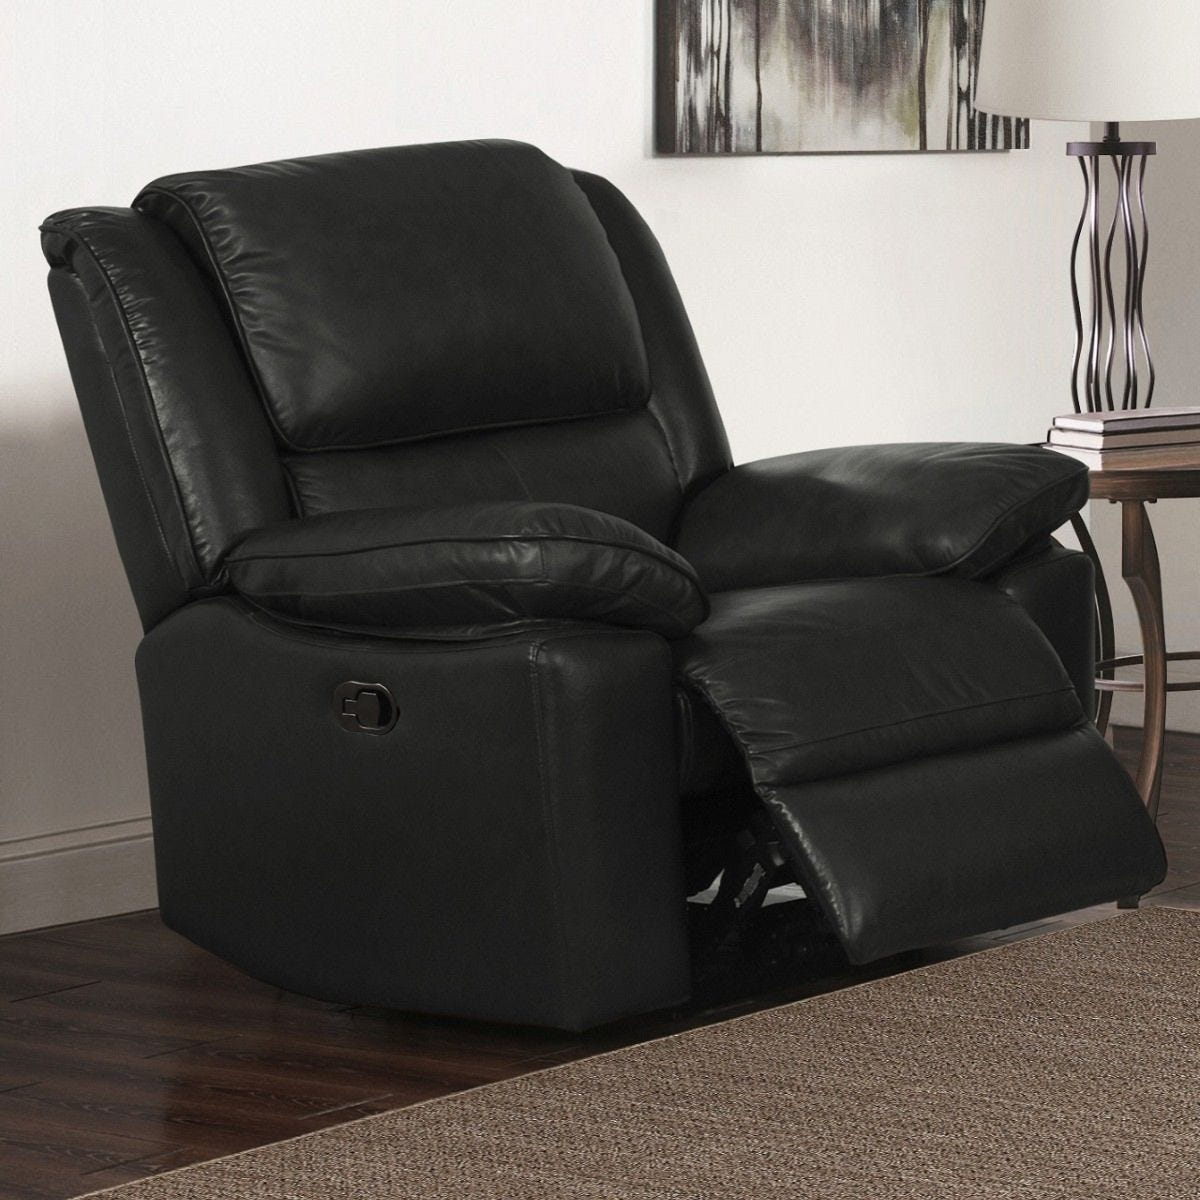 Tipton Faux Leather Reclining Armchair Black